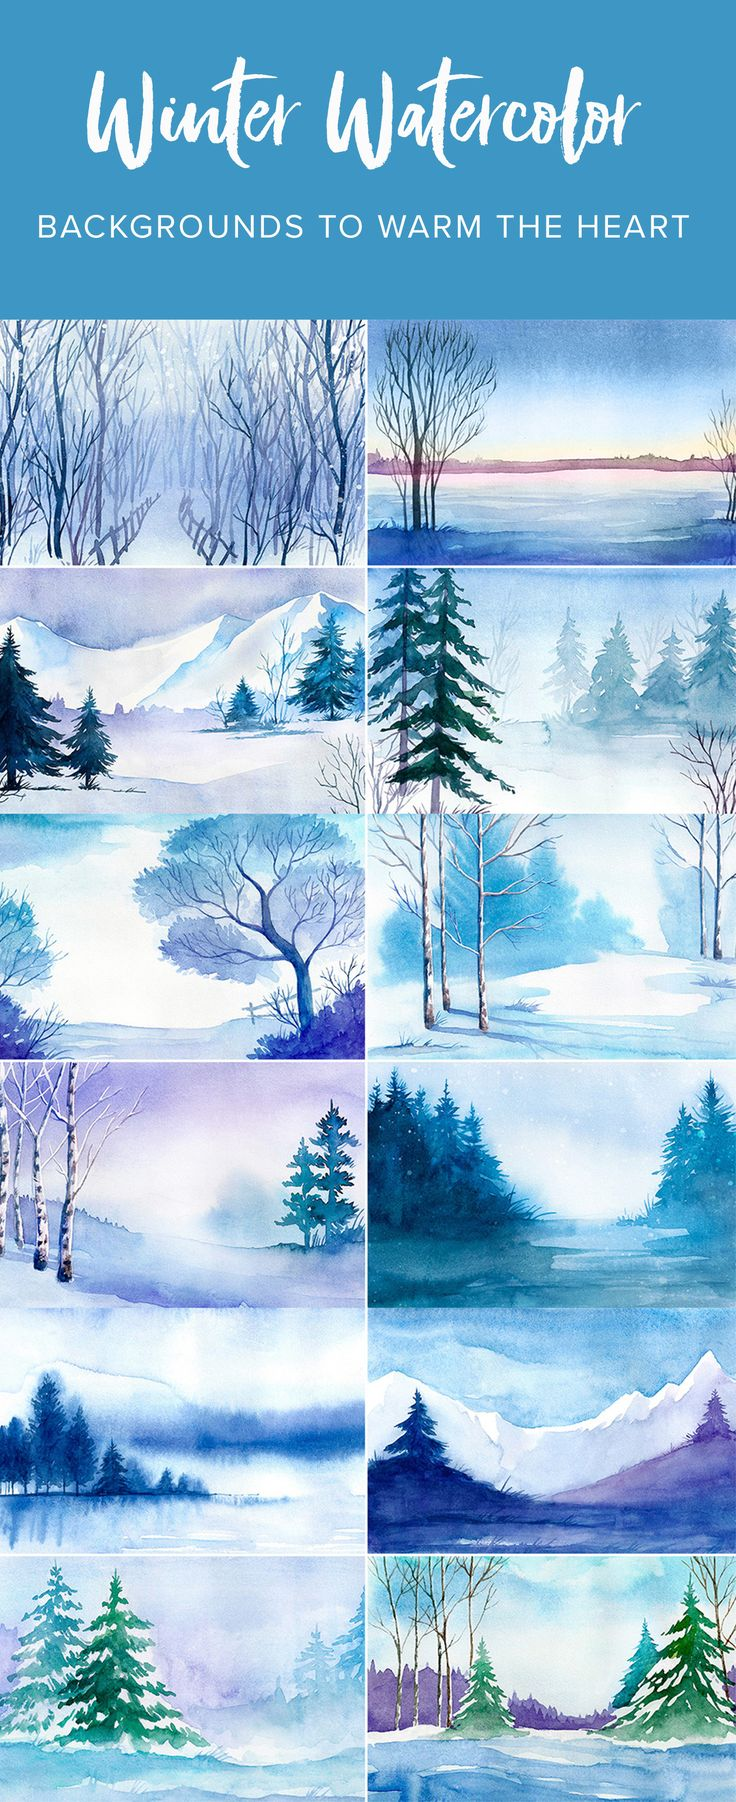 Here are a dozen winter watercolor wonderlands to choose among. Do you prefer mystical forest paths, frozen lakes, snow-covered mountains, or the simple splendor of evergreen pines? I hear Santa has a few of these on posters with motivational quotes for his elves.